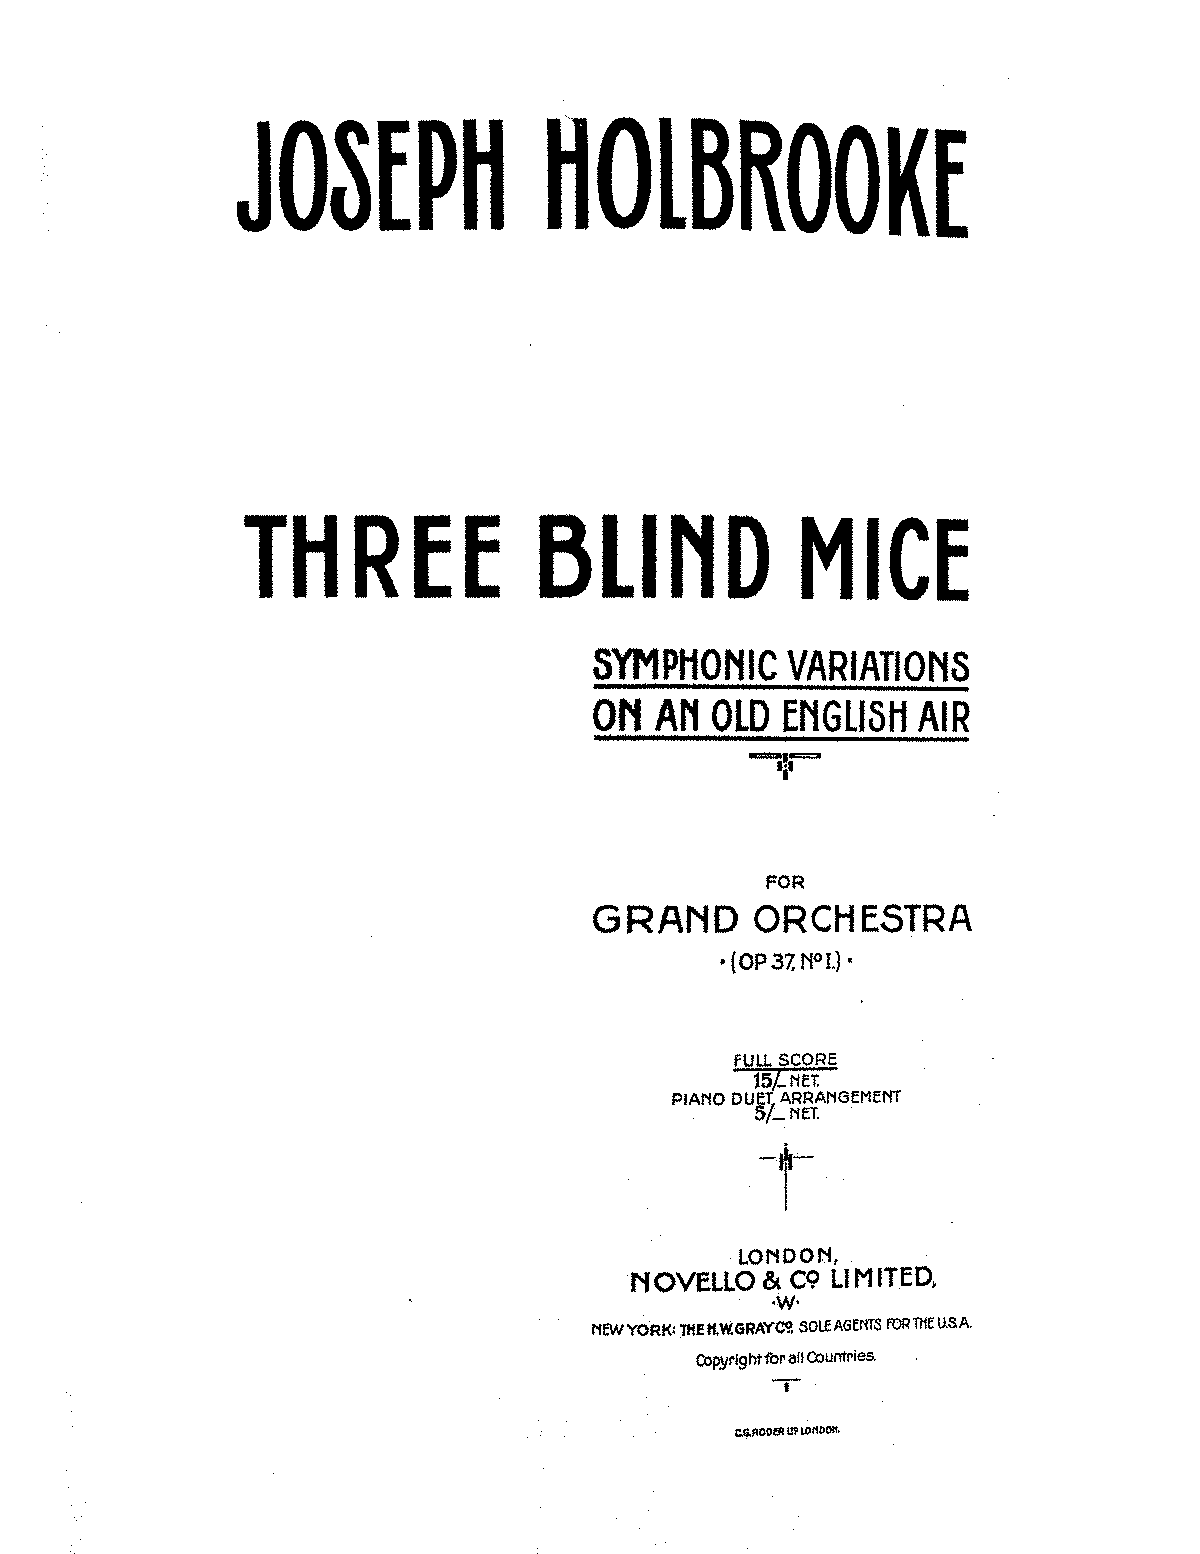 PMLP60634-Holbrooke - Three Blind Mice Symphonic Variations on an Old English Air Op 37 No 1.pdf